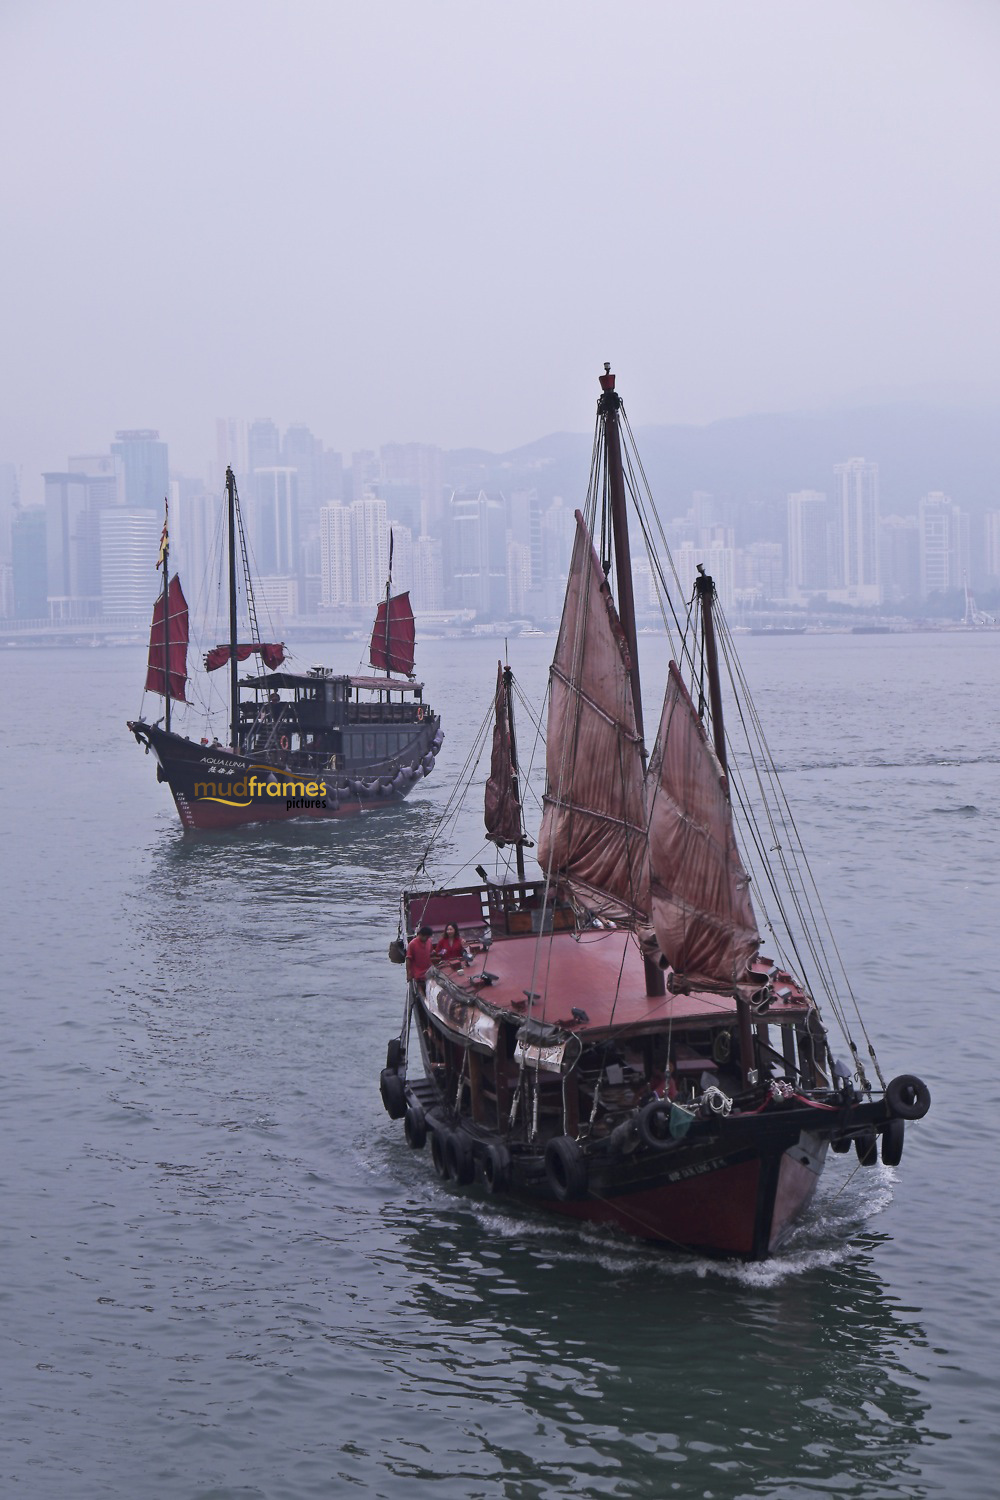 Junk against Hong Kong island as backdrop